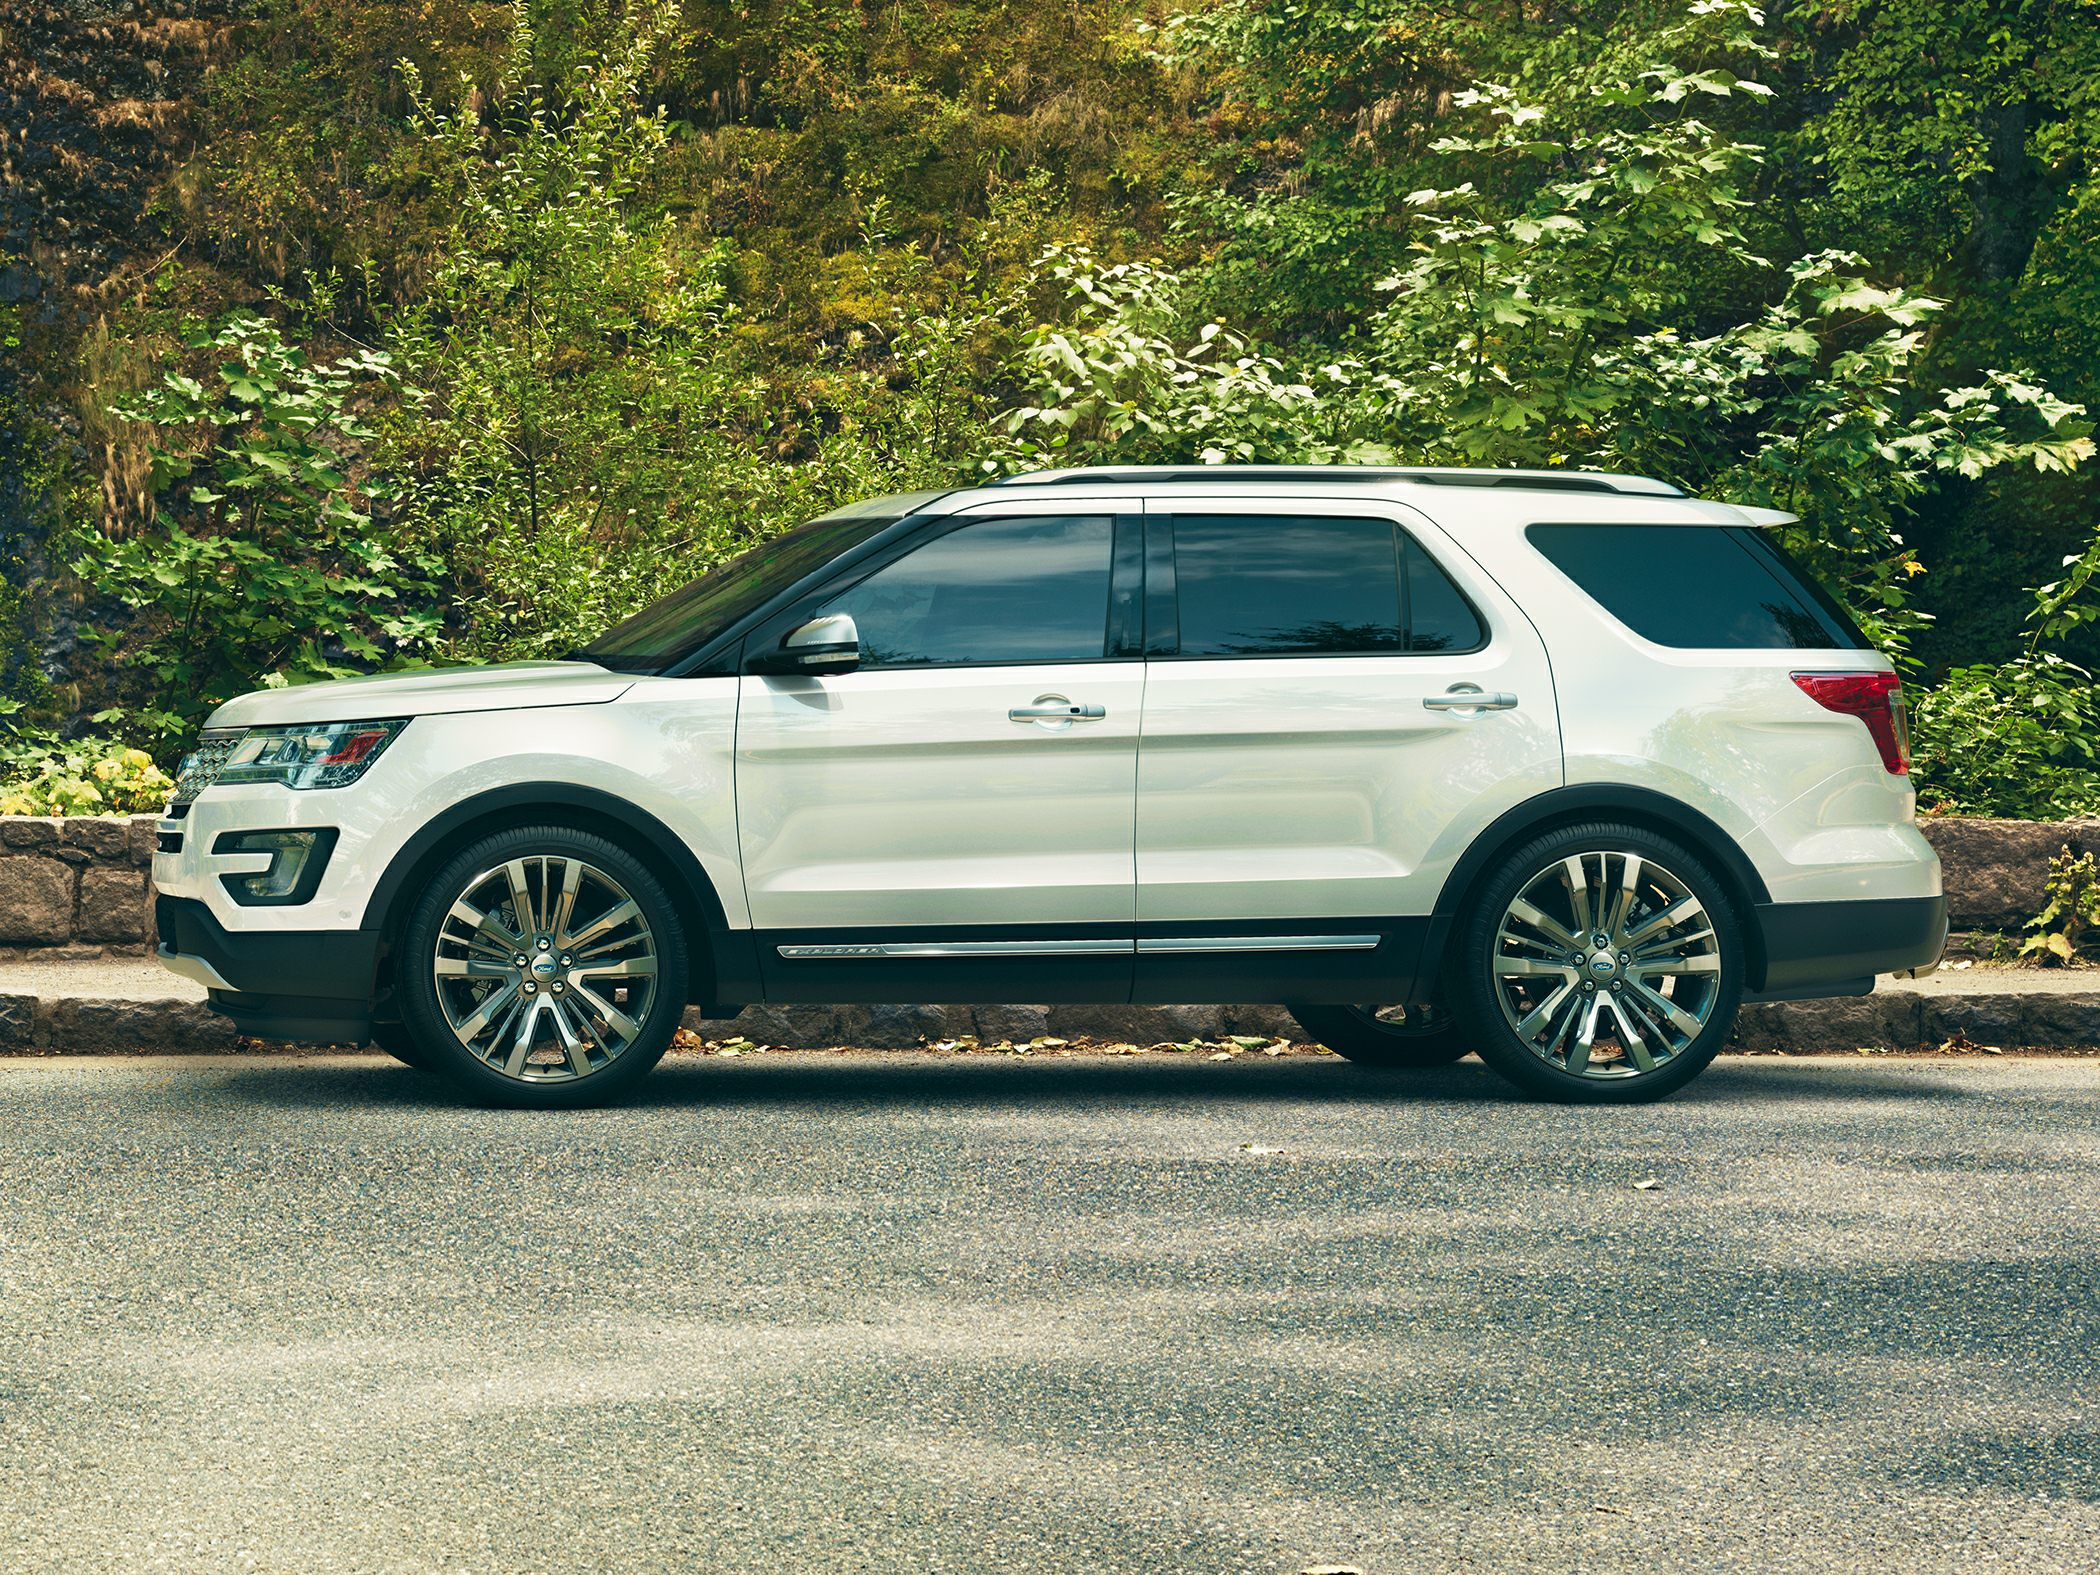 2016 Ford Explorer Styles Amp Features Highlights